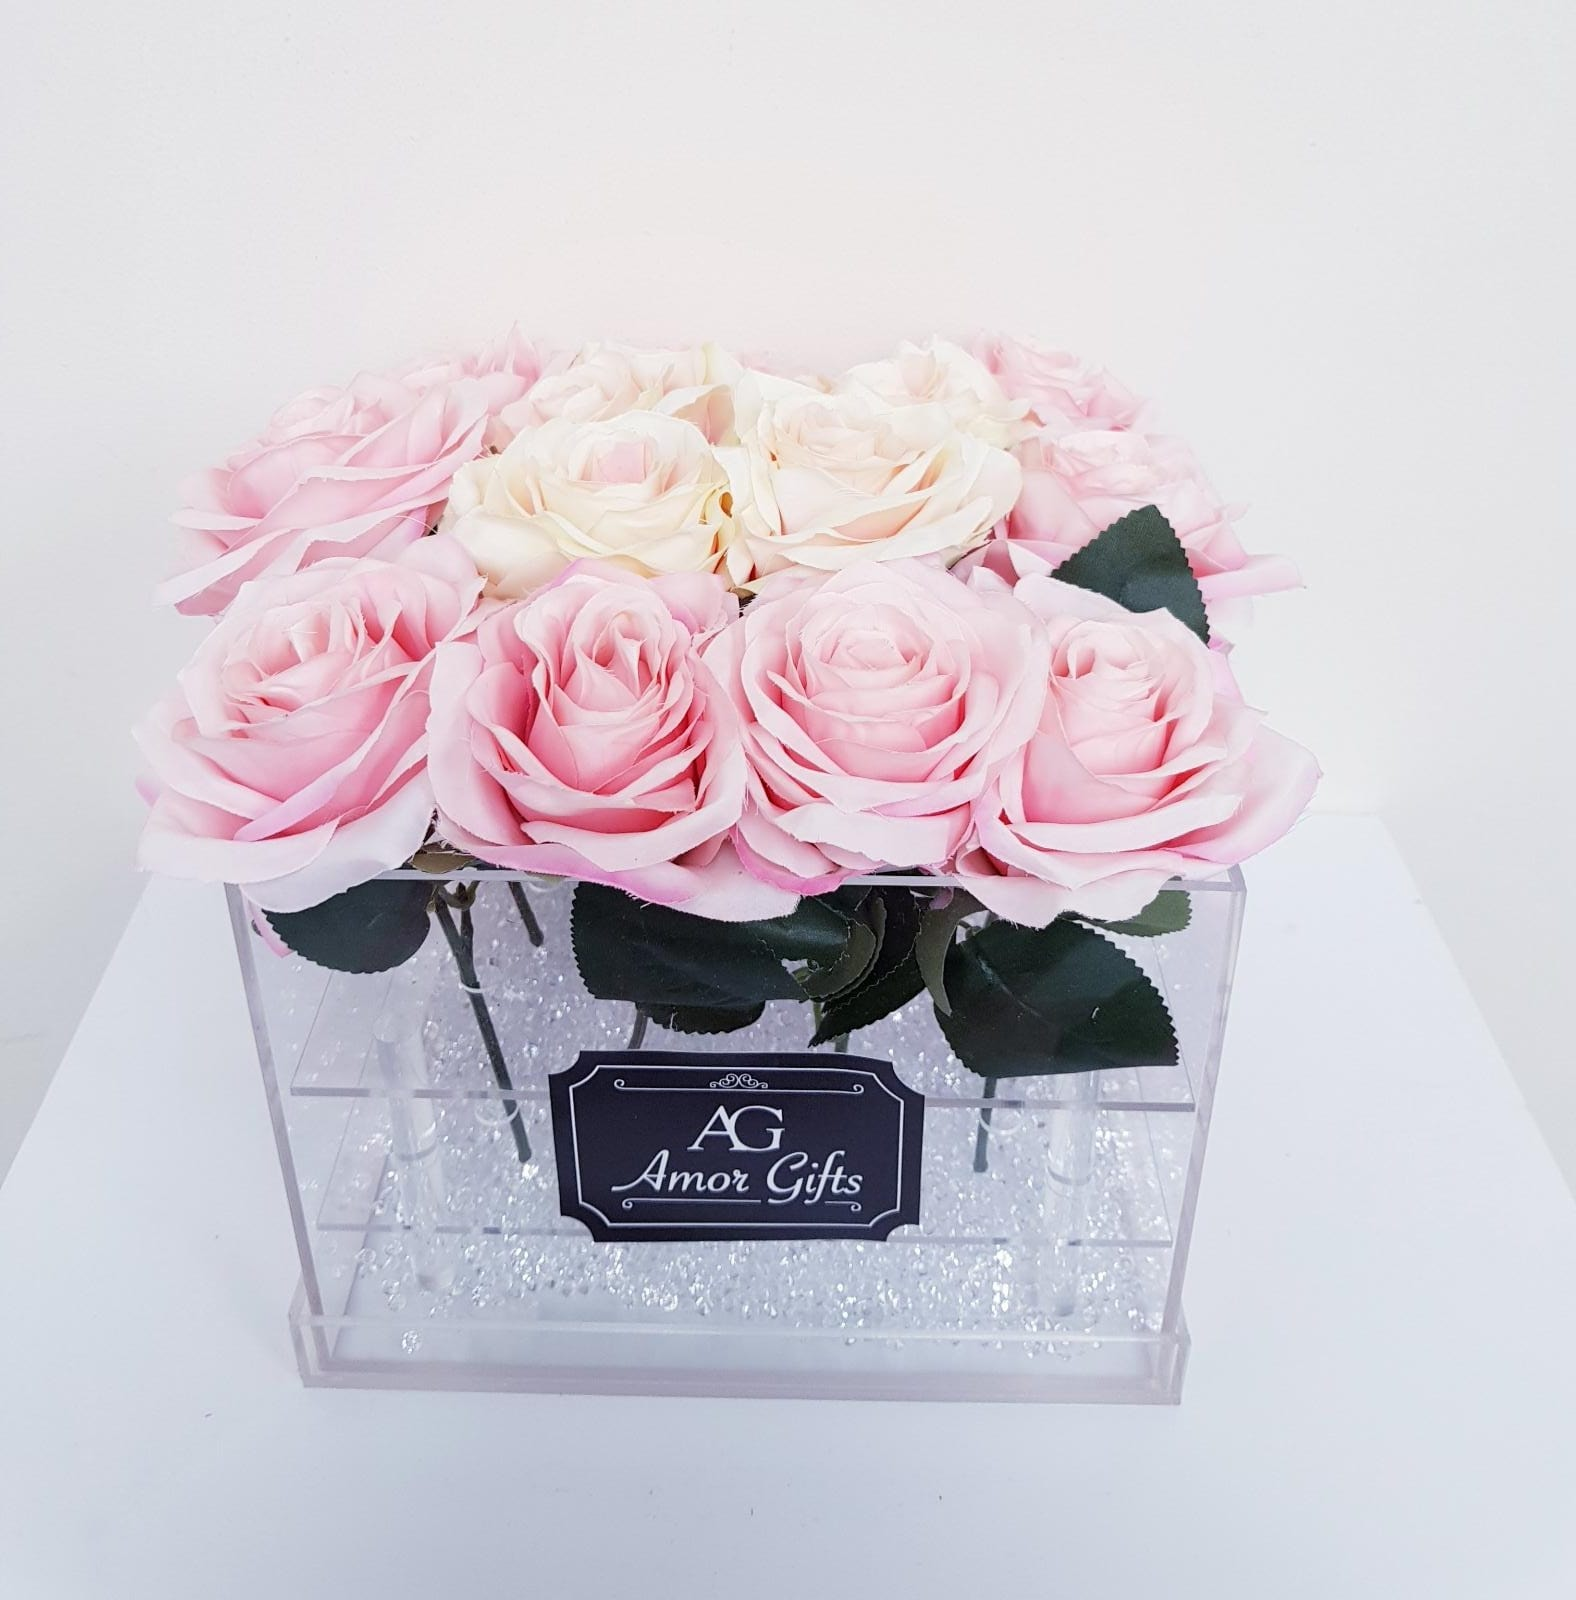 Single Rose Acrylic Just For You Hamper Clear Jewlery Flower Box Flowers Handbouqet Box